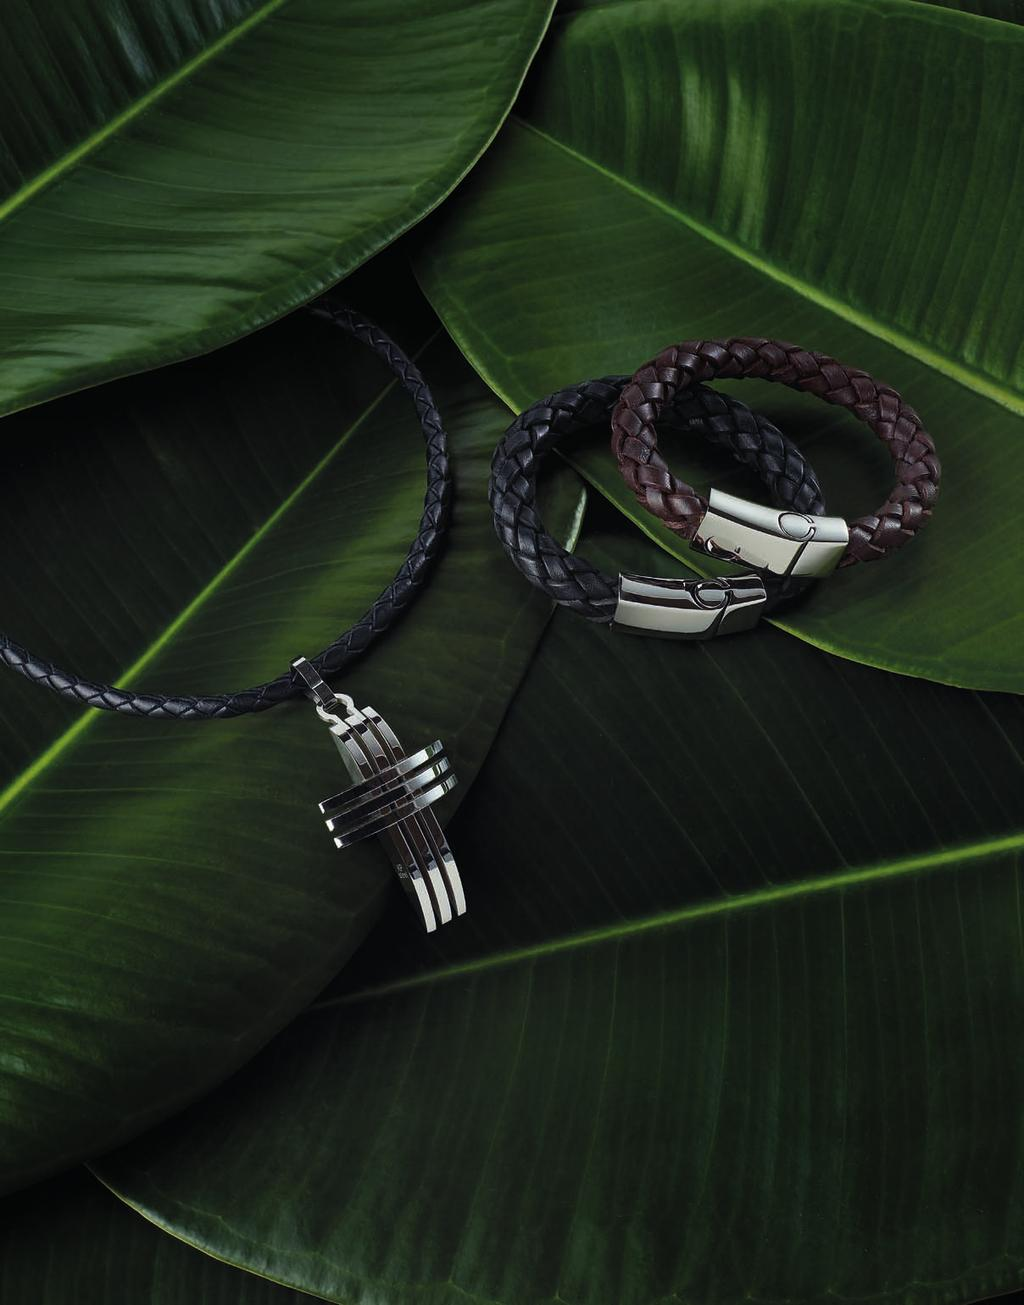 LEATHER CORD CODE: 2217-1/-2/-3/-4 43,50 Braided leather cord Ø 5mm, in your choice of black or brown color, closure made of stainless steel, black length 20 in/50cm -1 black length 22 in/55cm -2